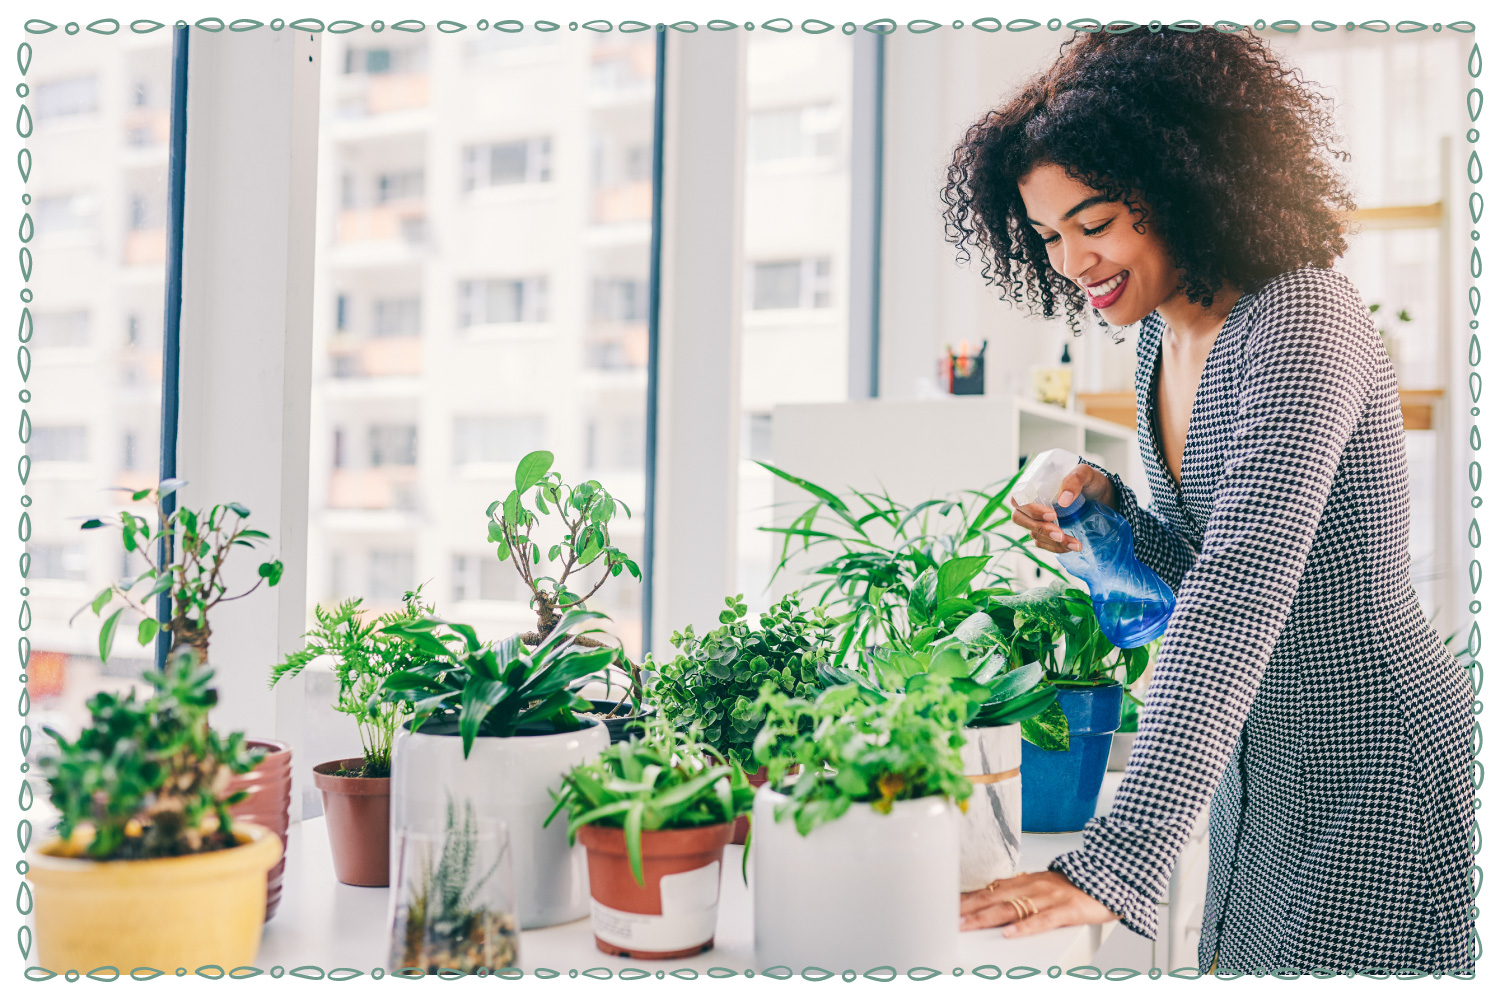 smiling woman tending her indoor plant collection